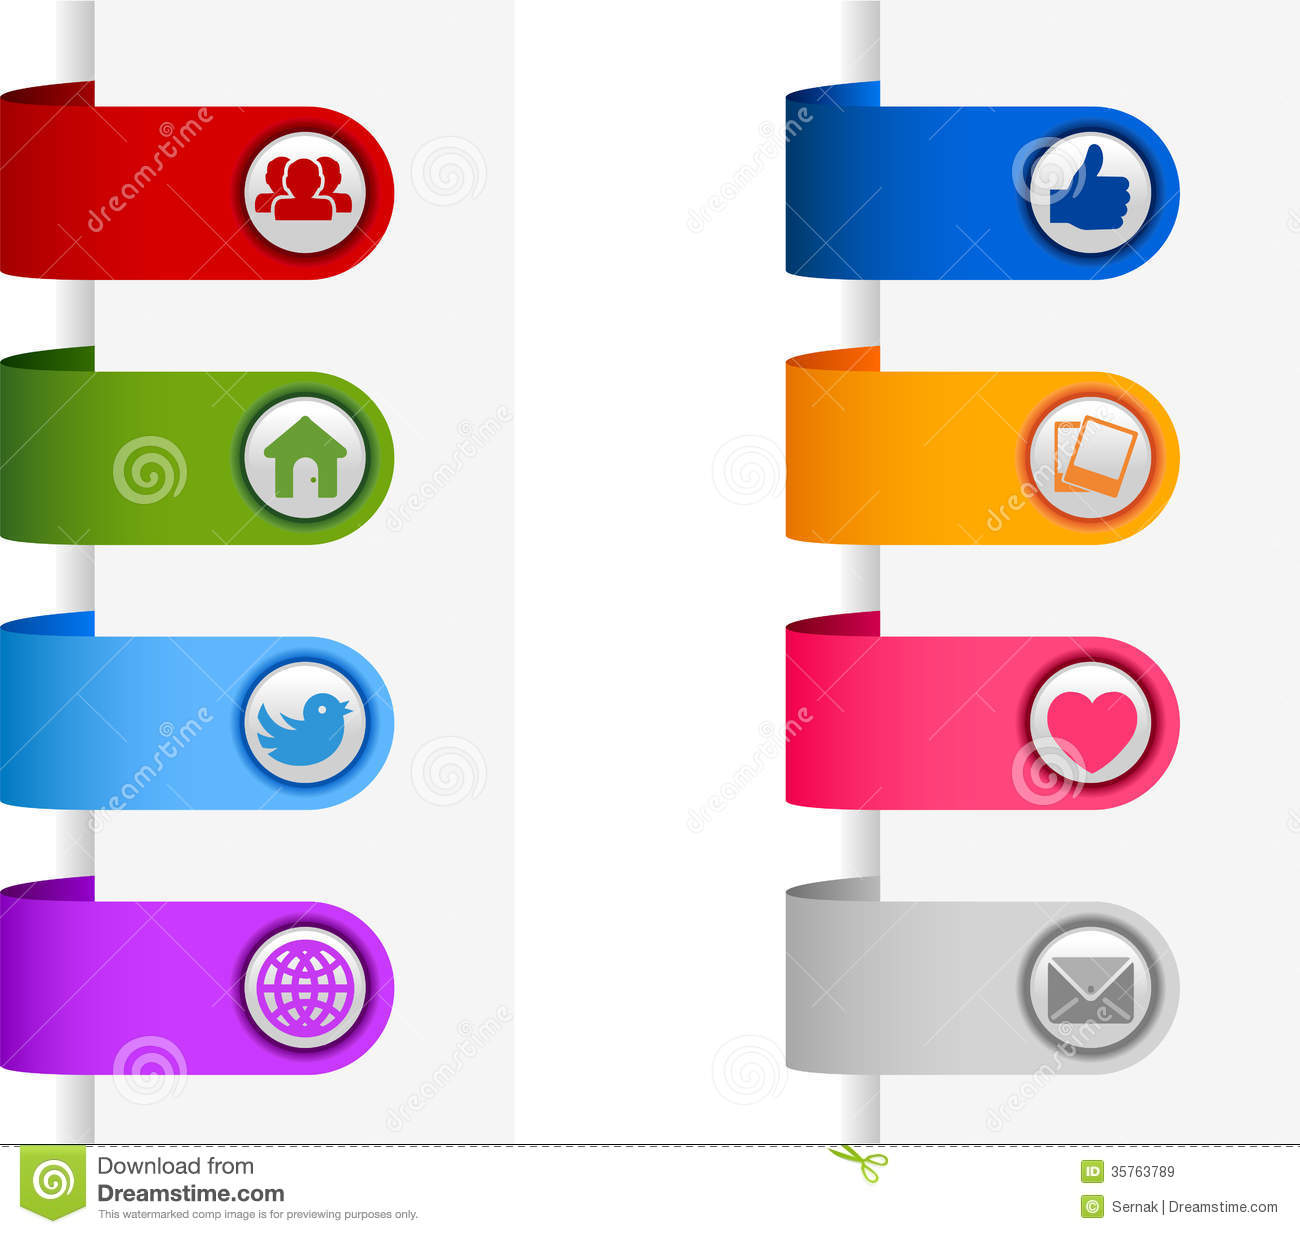 Social Media Banners Royalty Free Stock Images - Image: 35763789